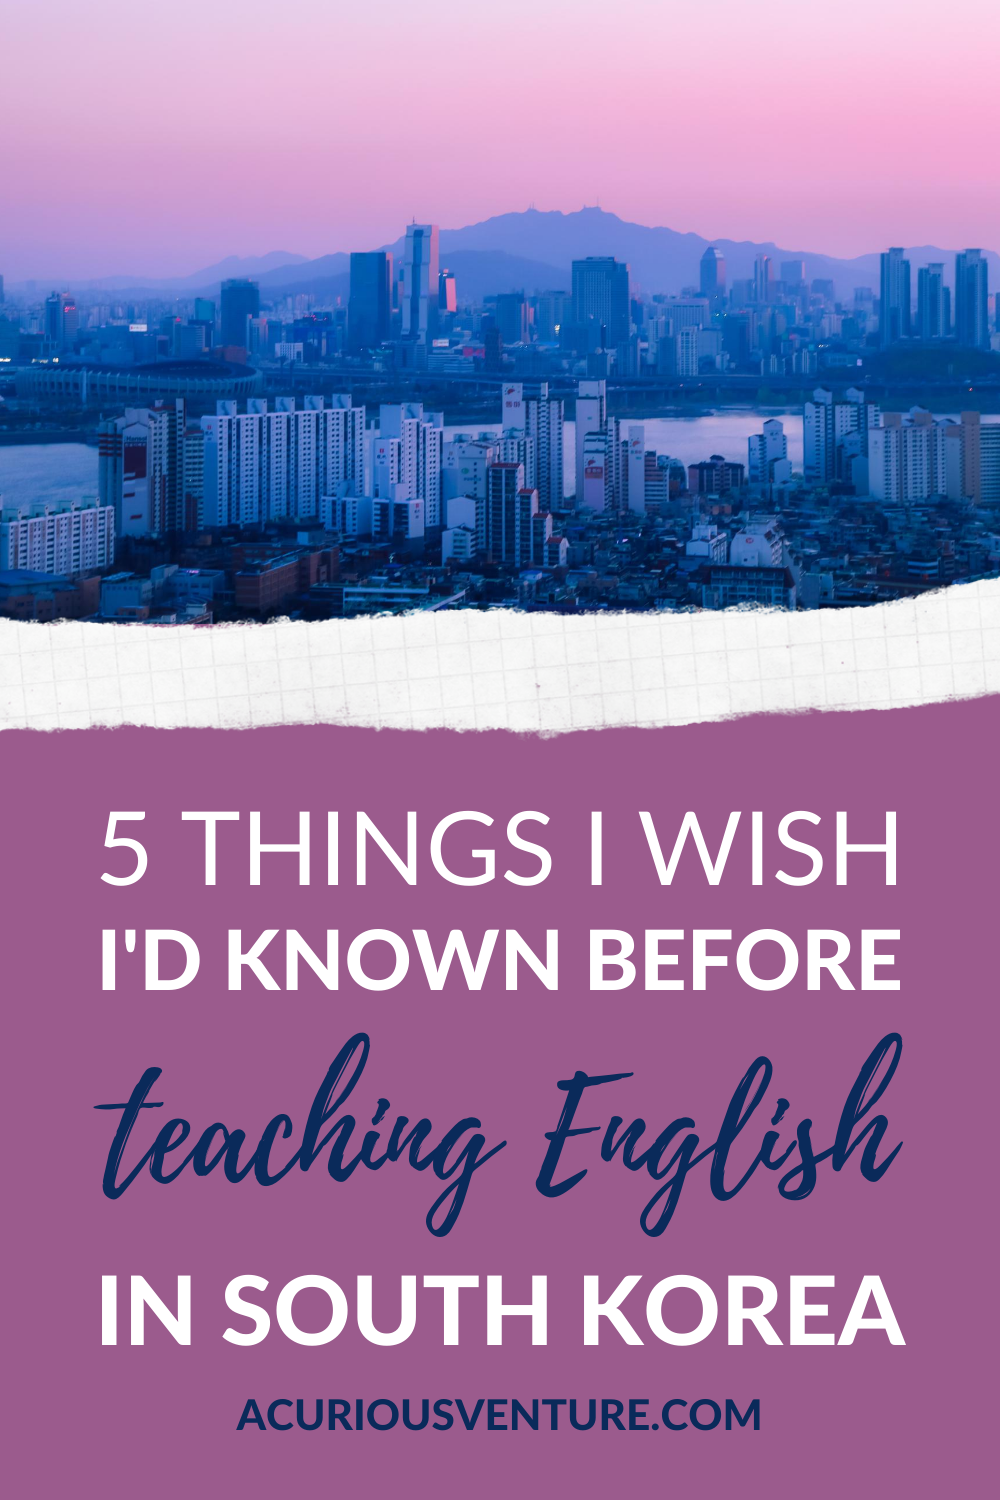 5 things I wish I'd known before teaching English in South Korea